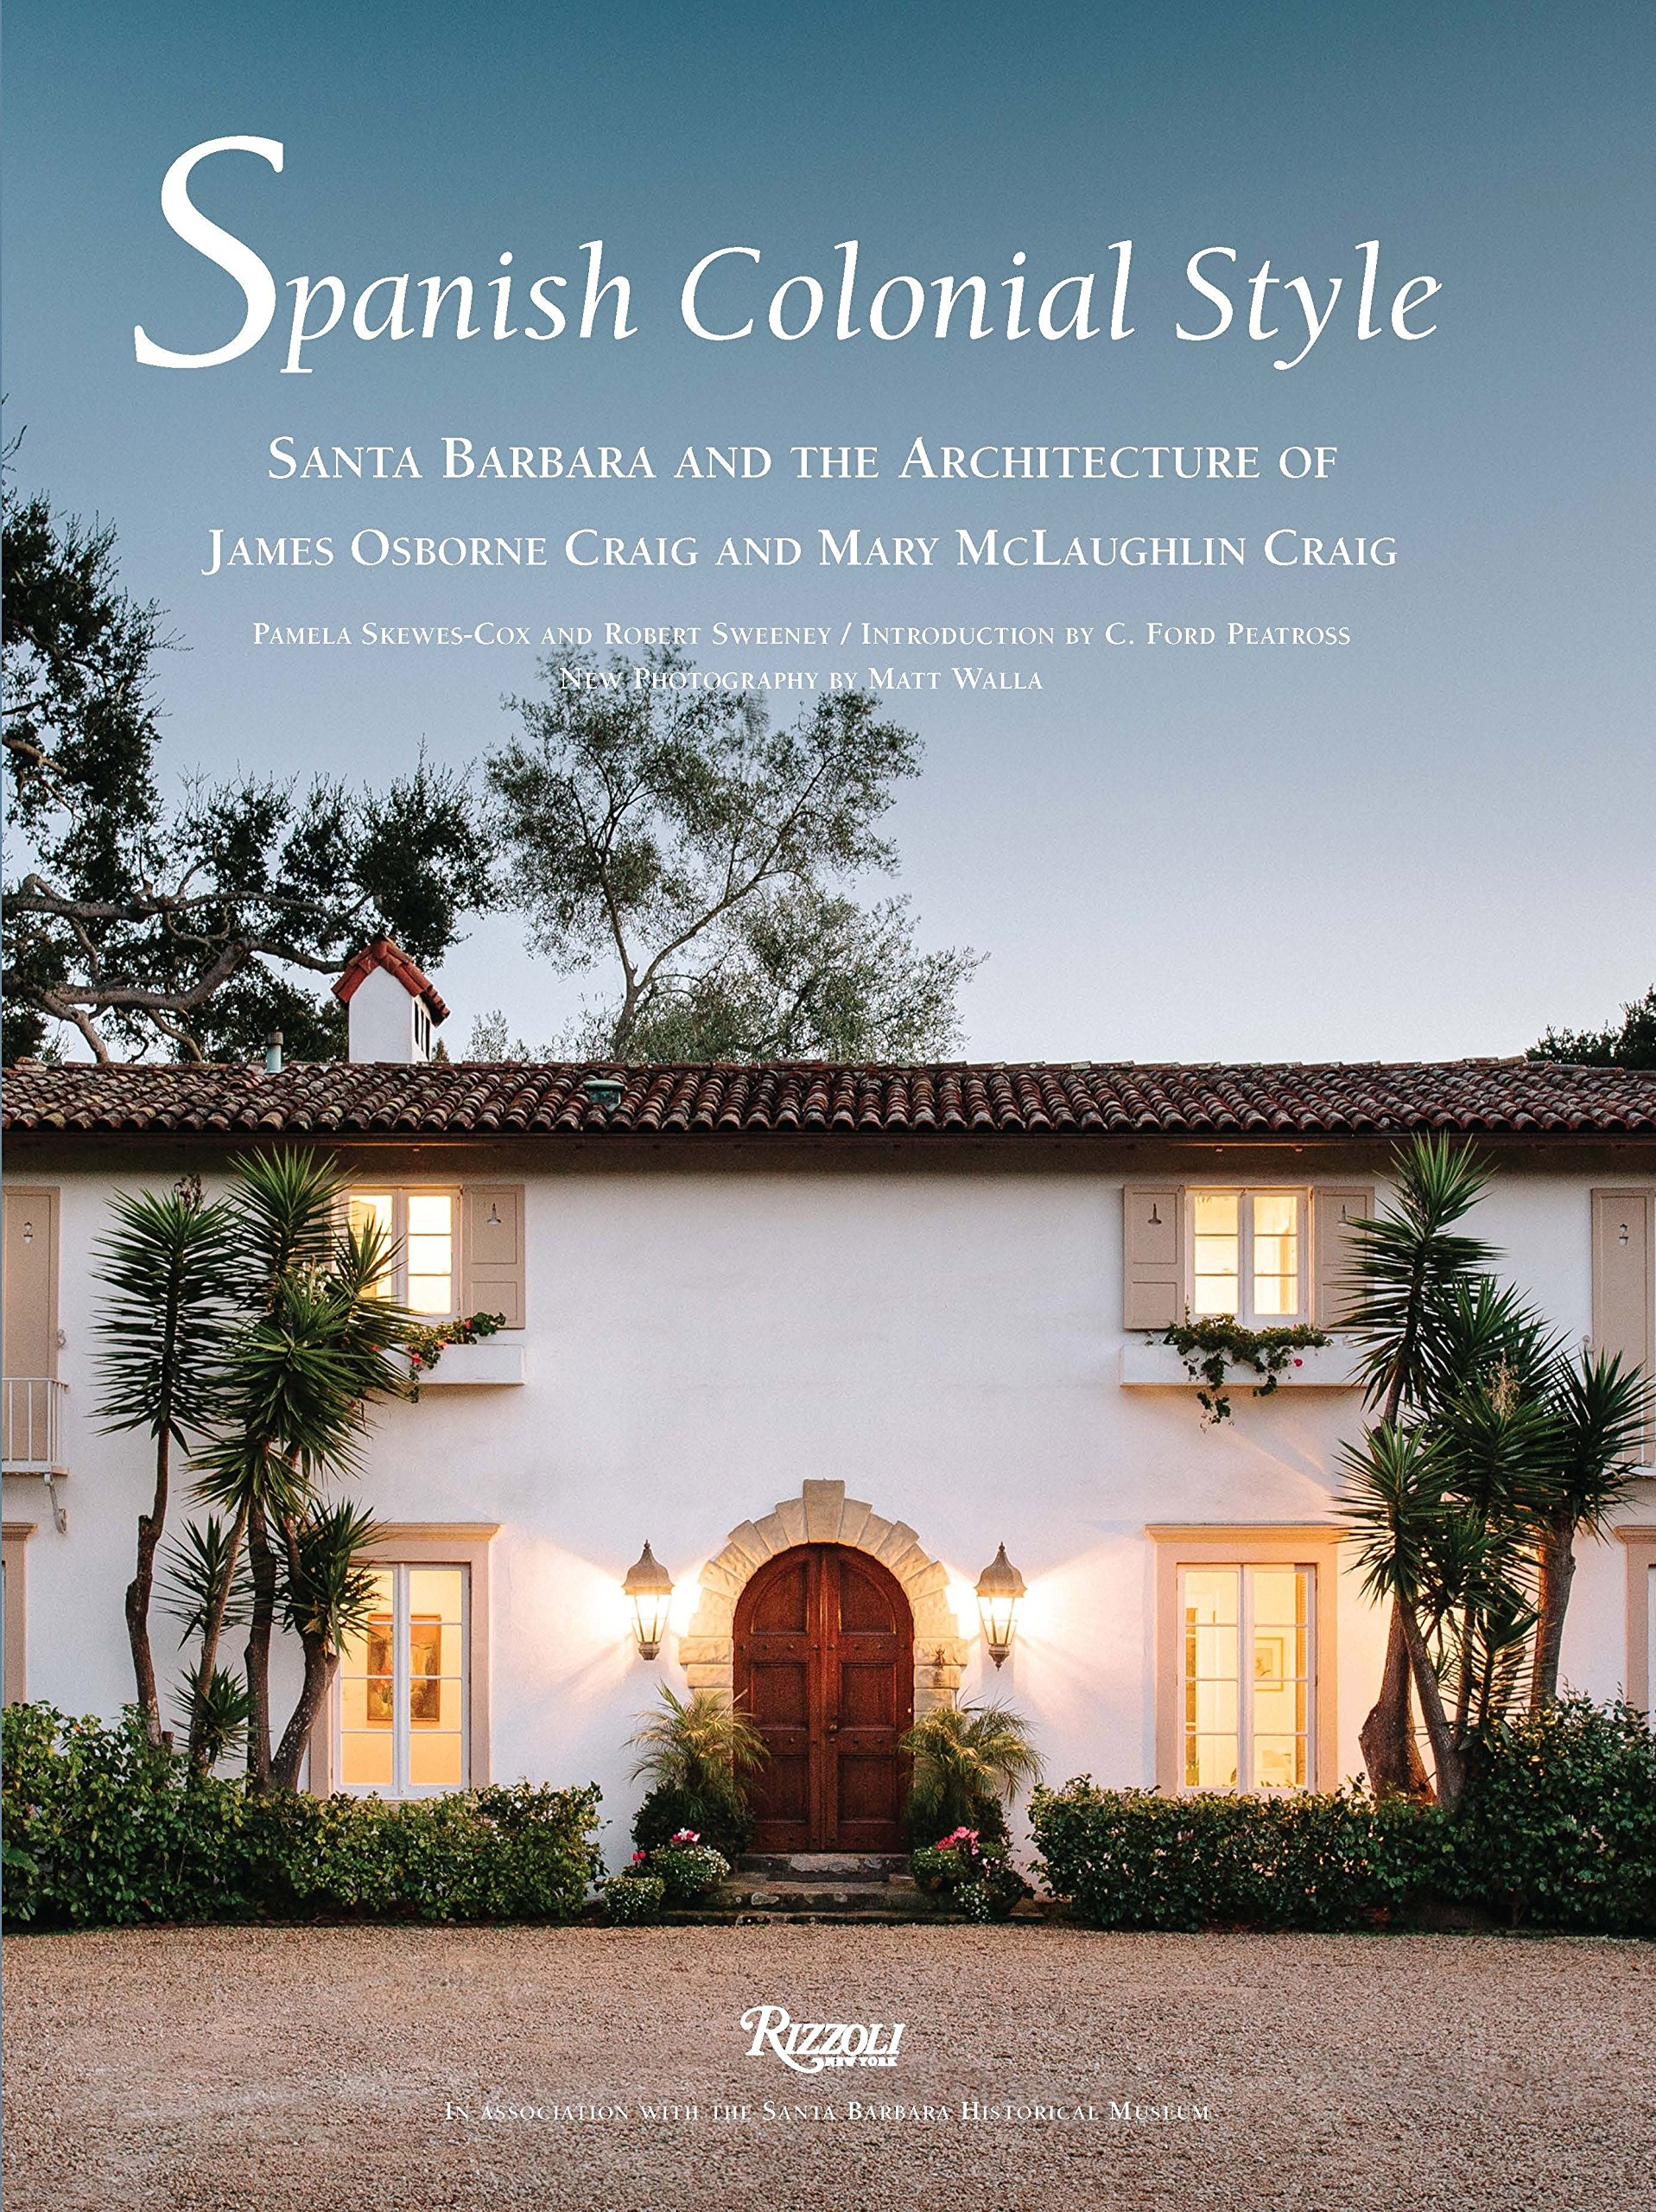 Spanish Colonial Style: Santa Barbara and the Architecture of James Osborne Craig and Mary McLaughlin Craig